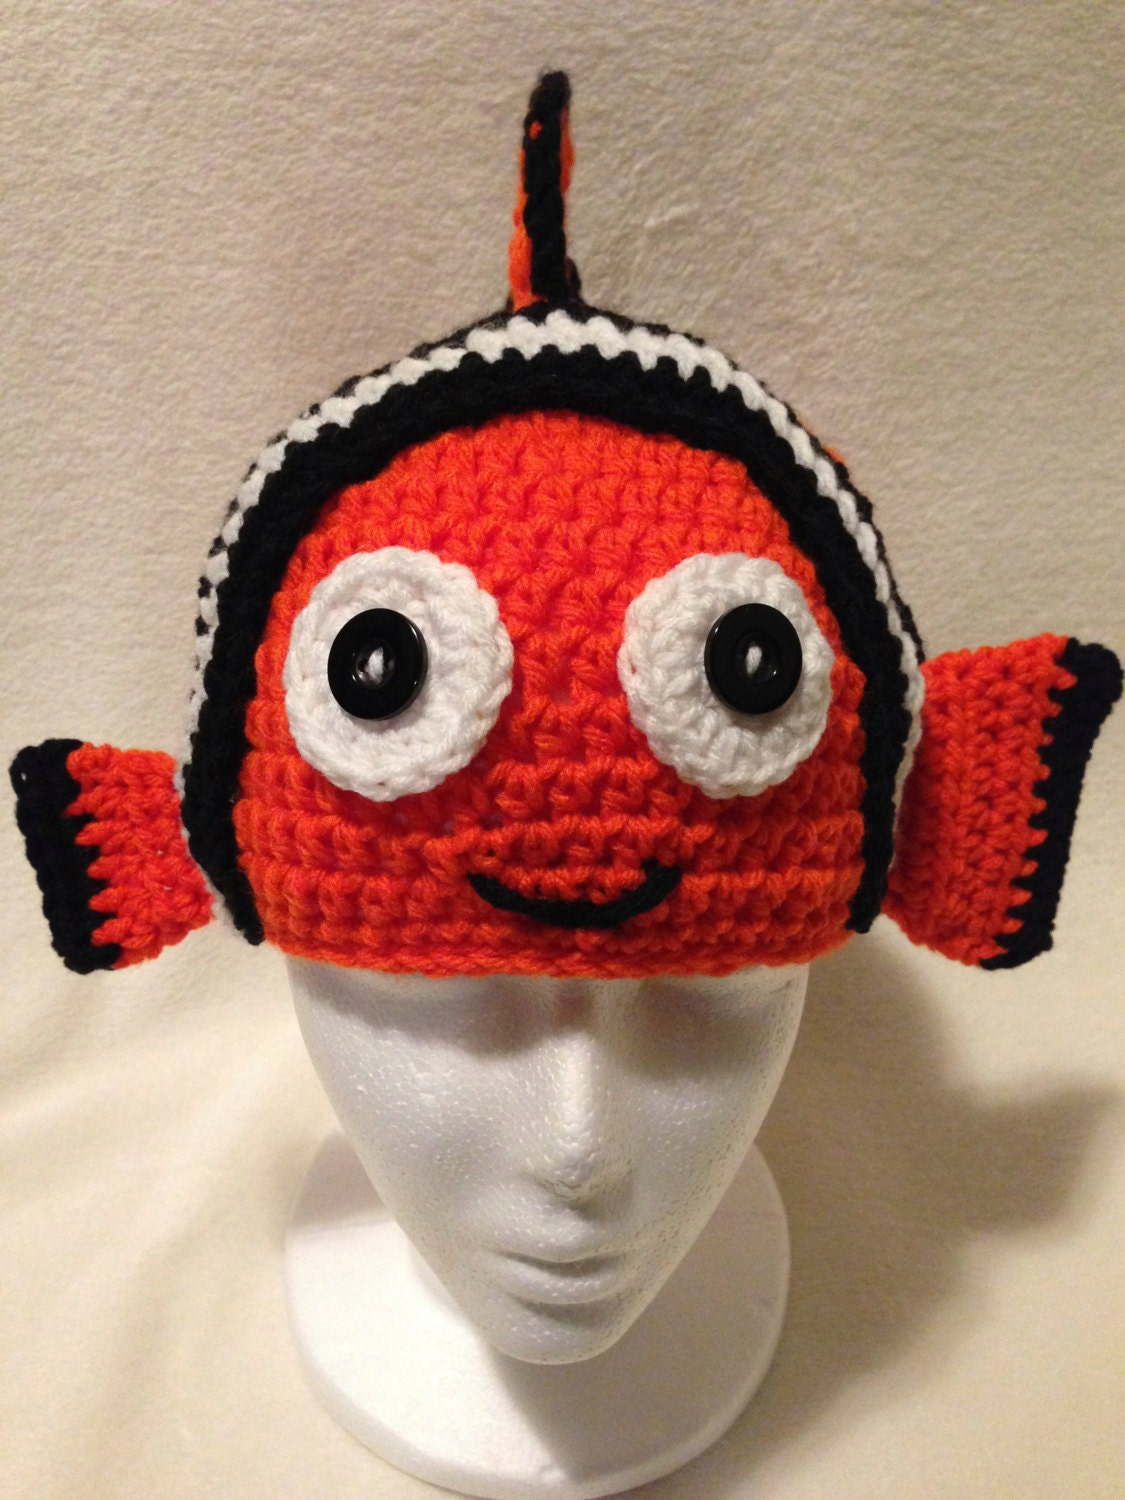 Nemo Inspired Crochet Hat Toddler/Kids by ToqueFairies on Etsy